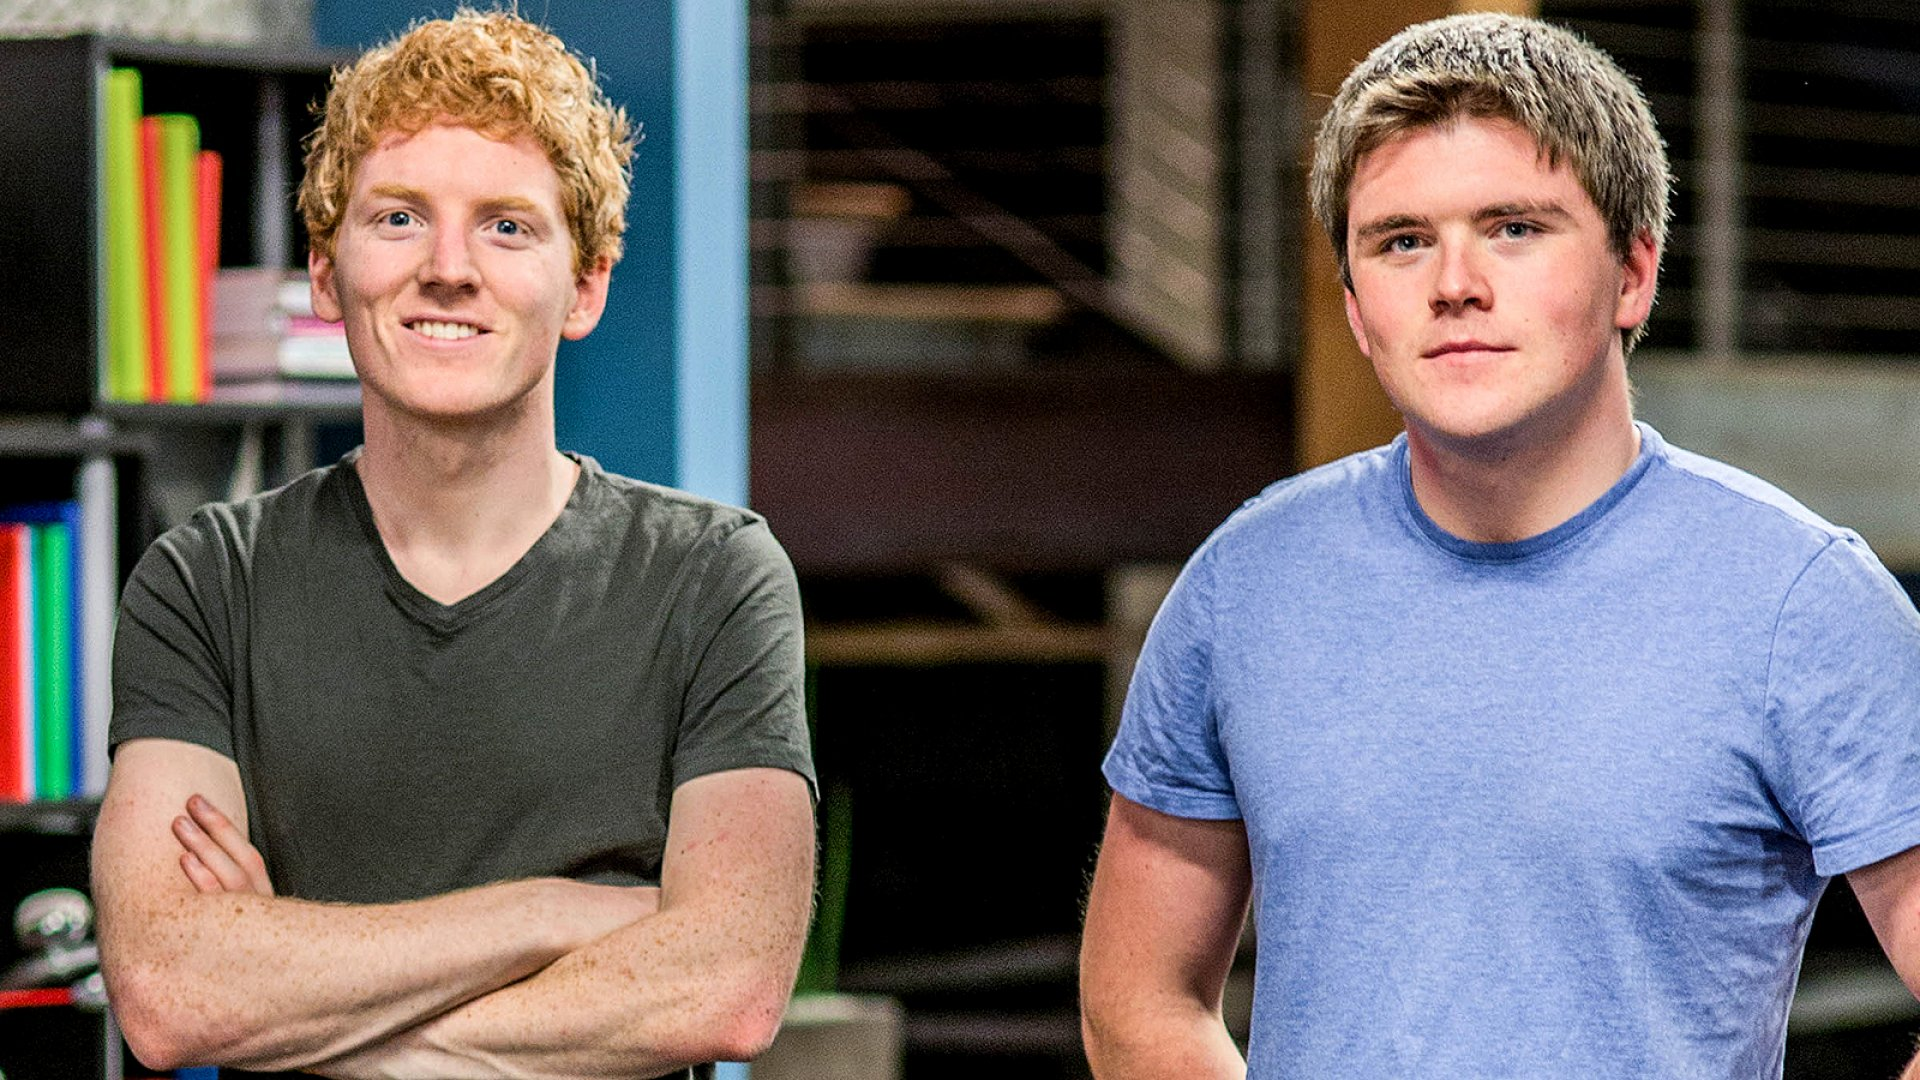 Patrick and John Collison.